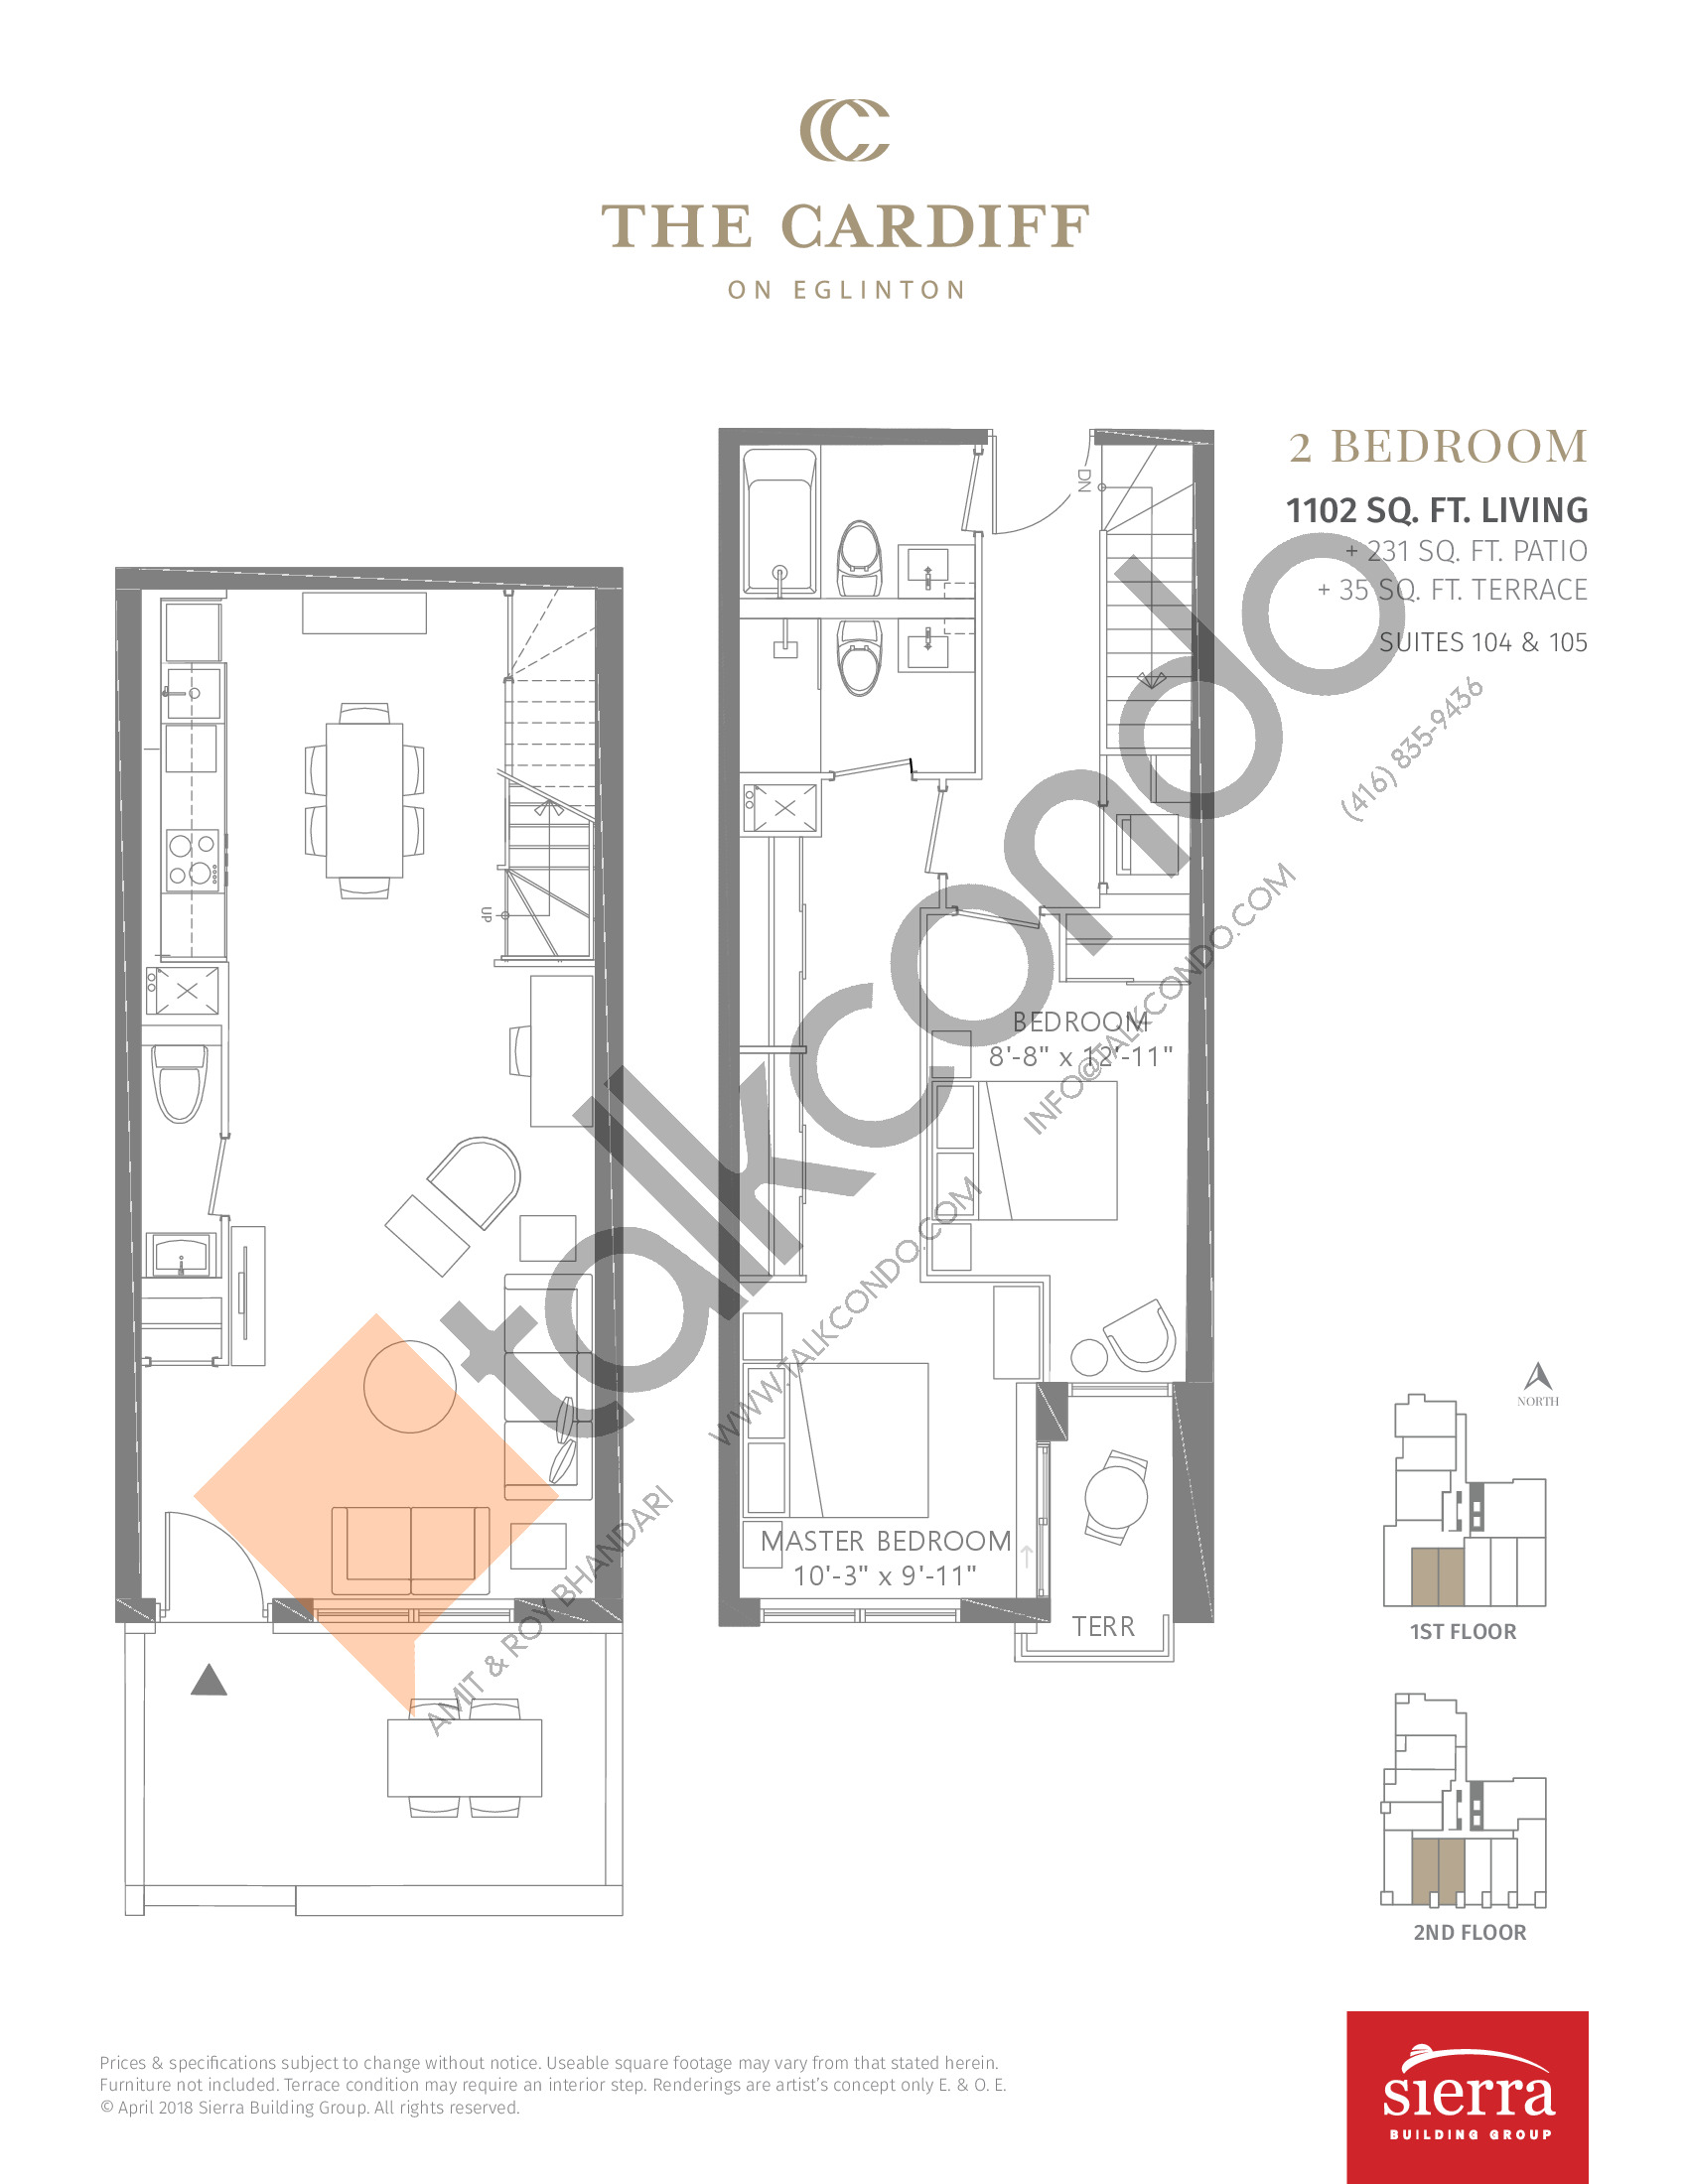 Suites 104 & 105 Floor Plan at The Cardiff Condos on Eglinton - 1102 sq.ft